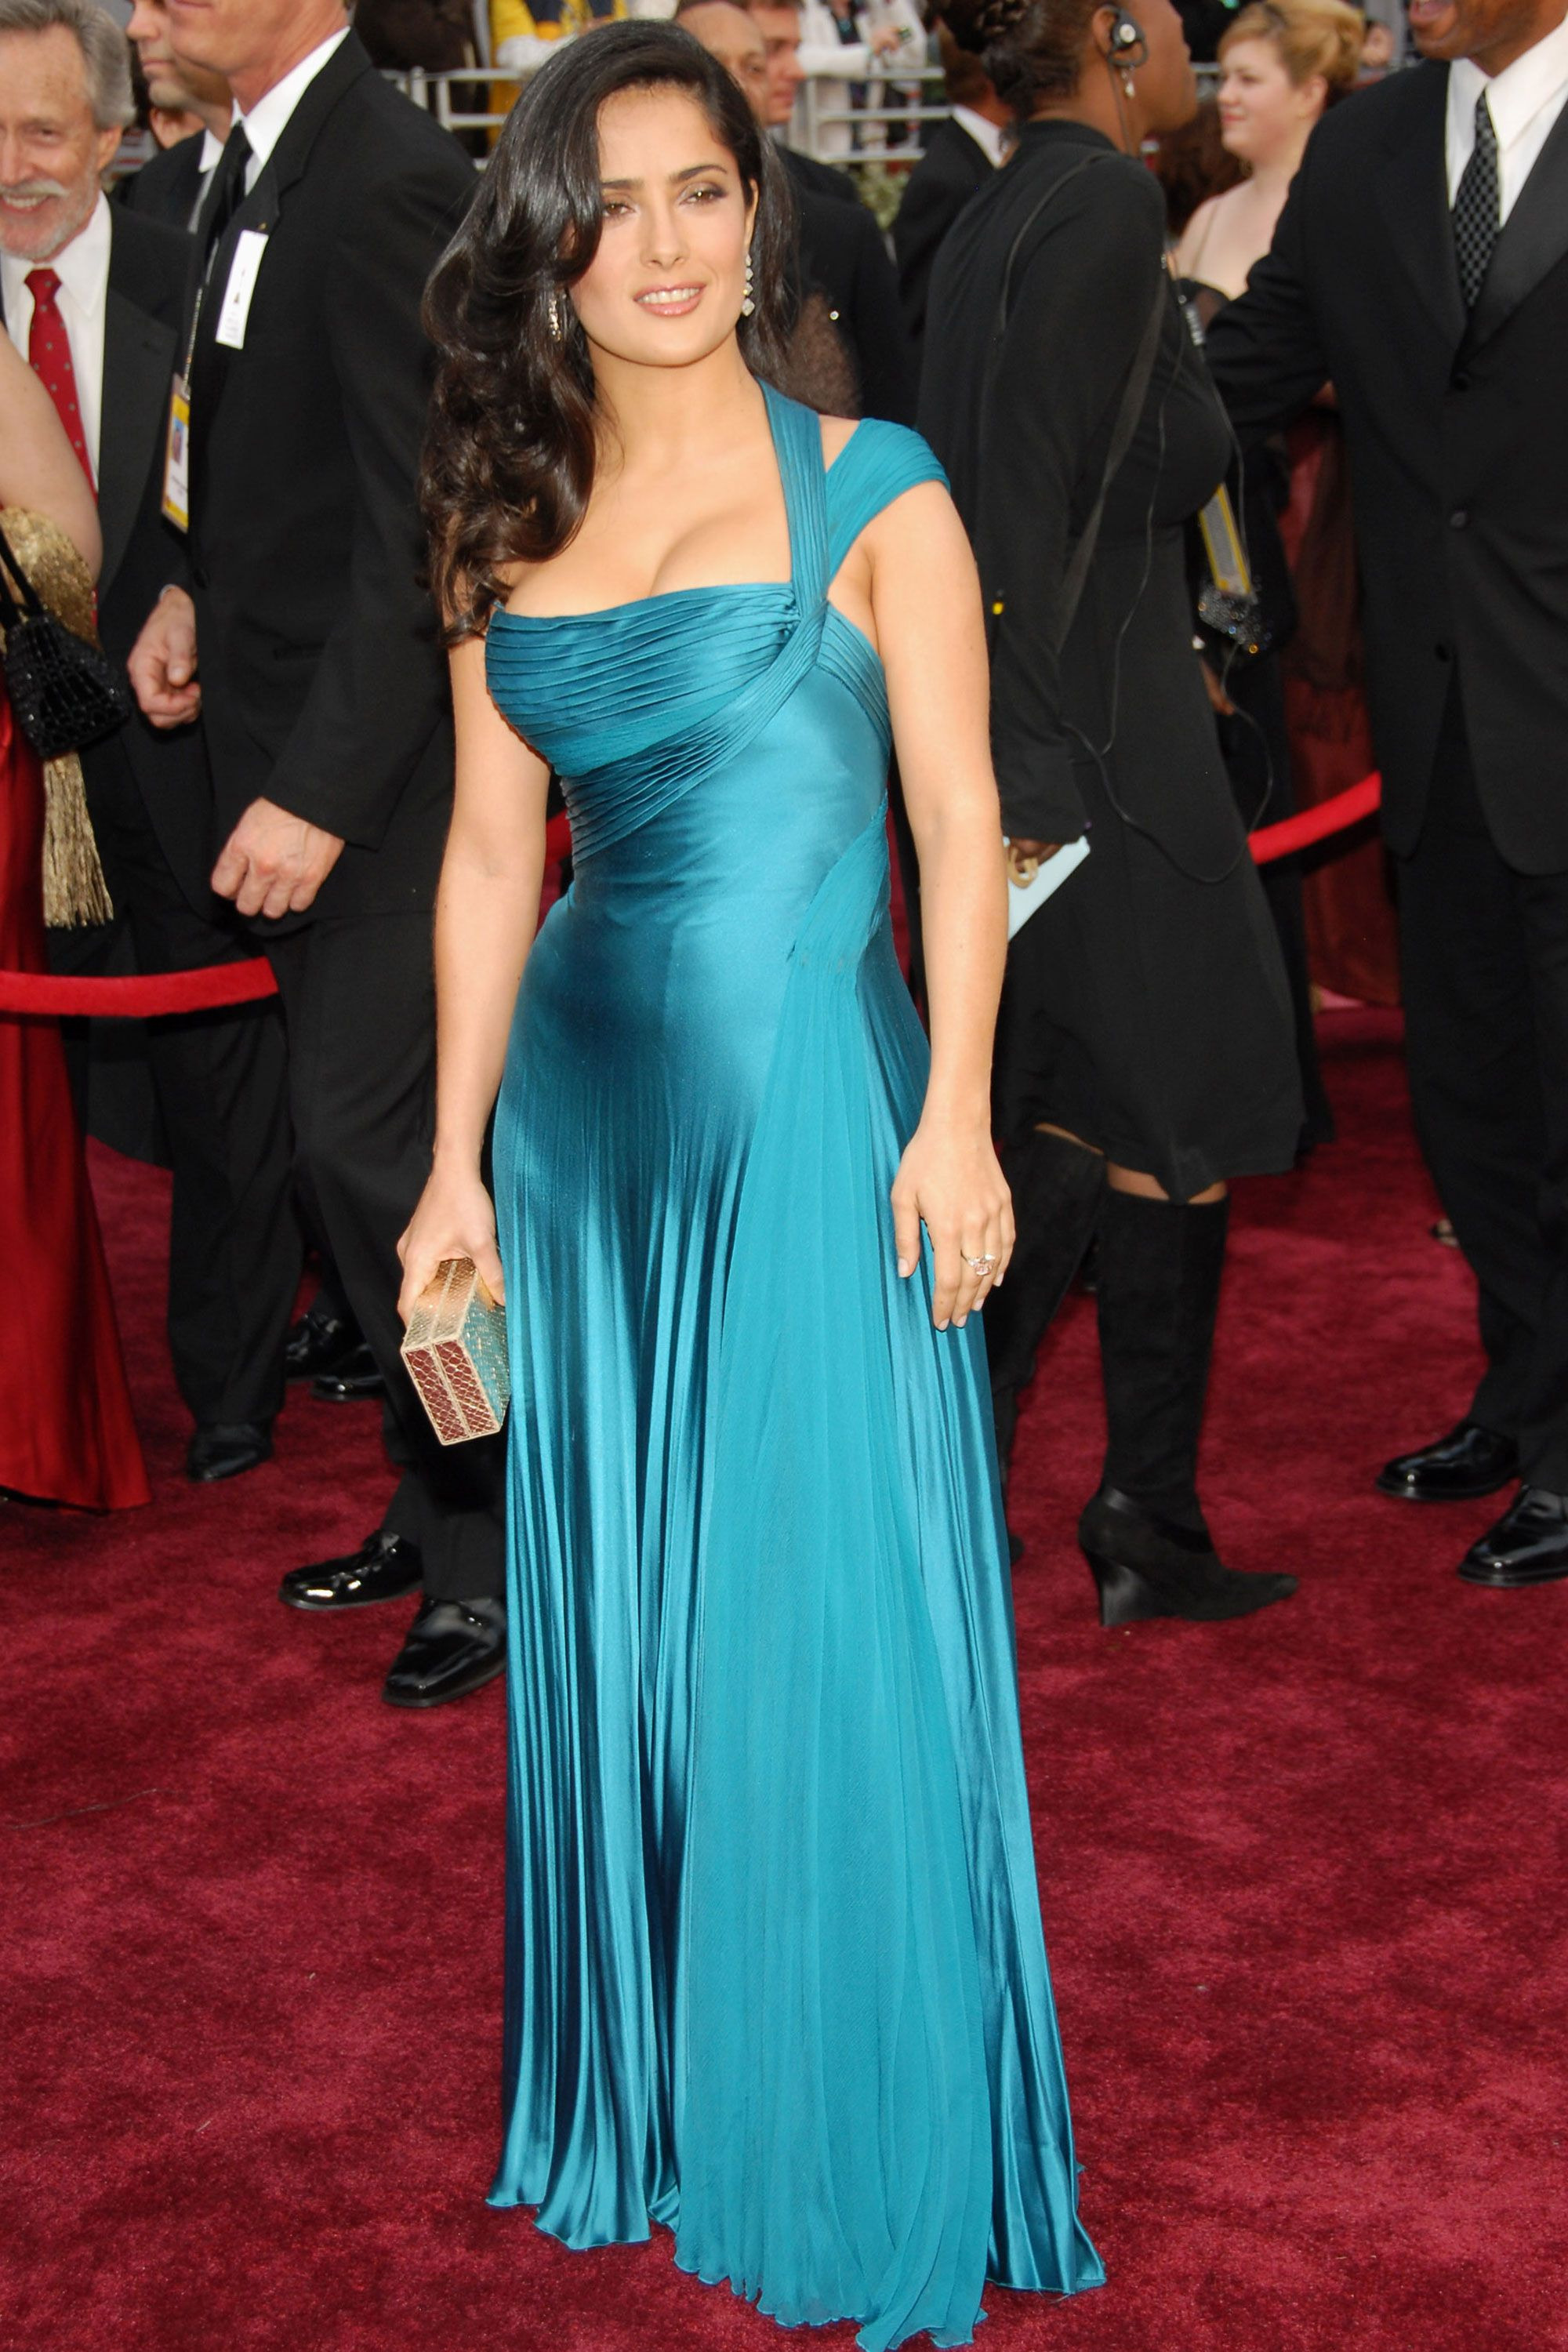 The Sexiest Oscars Dresses of All Time - Sexy Oscars Fashion